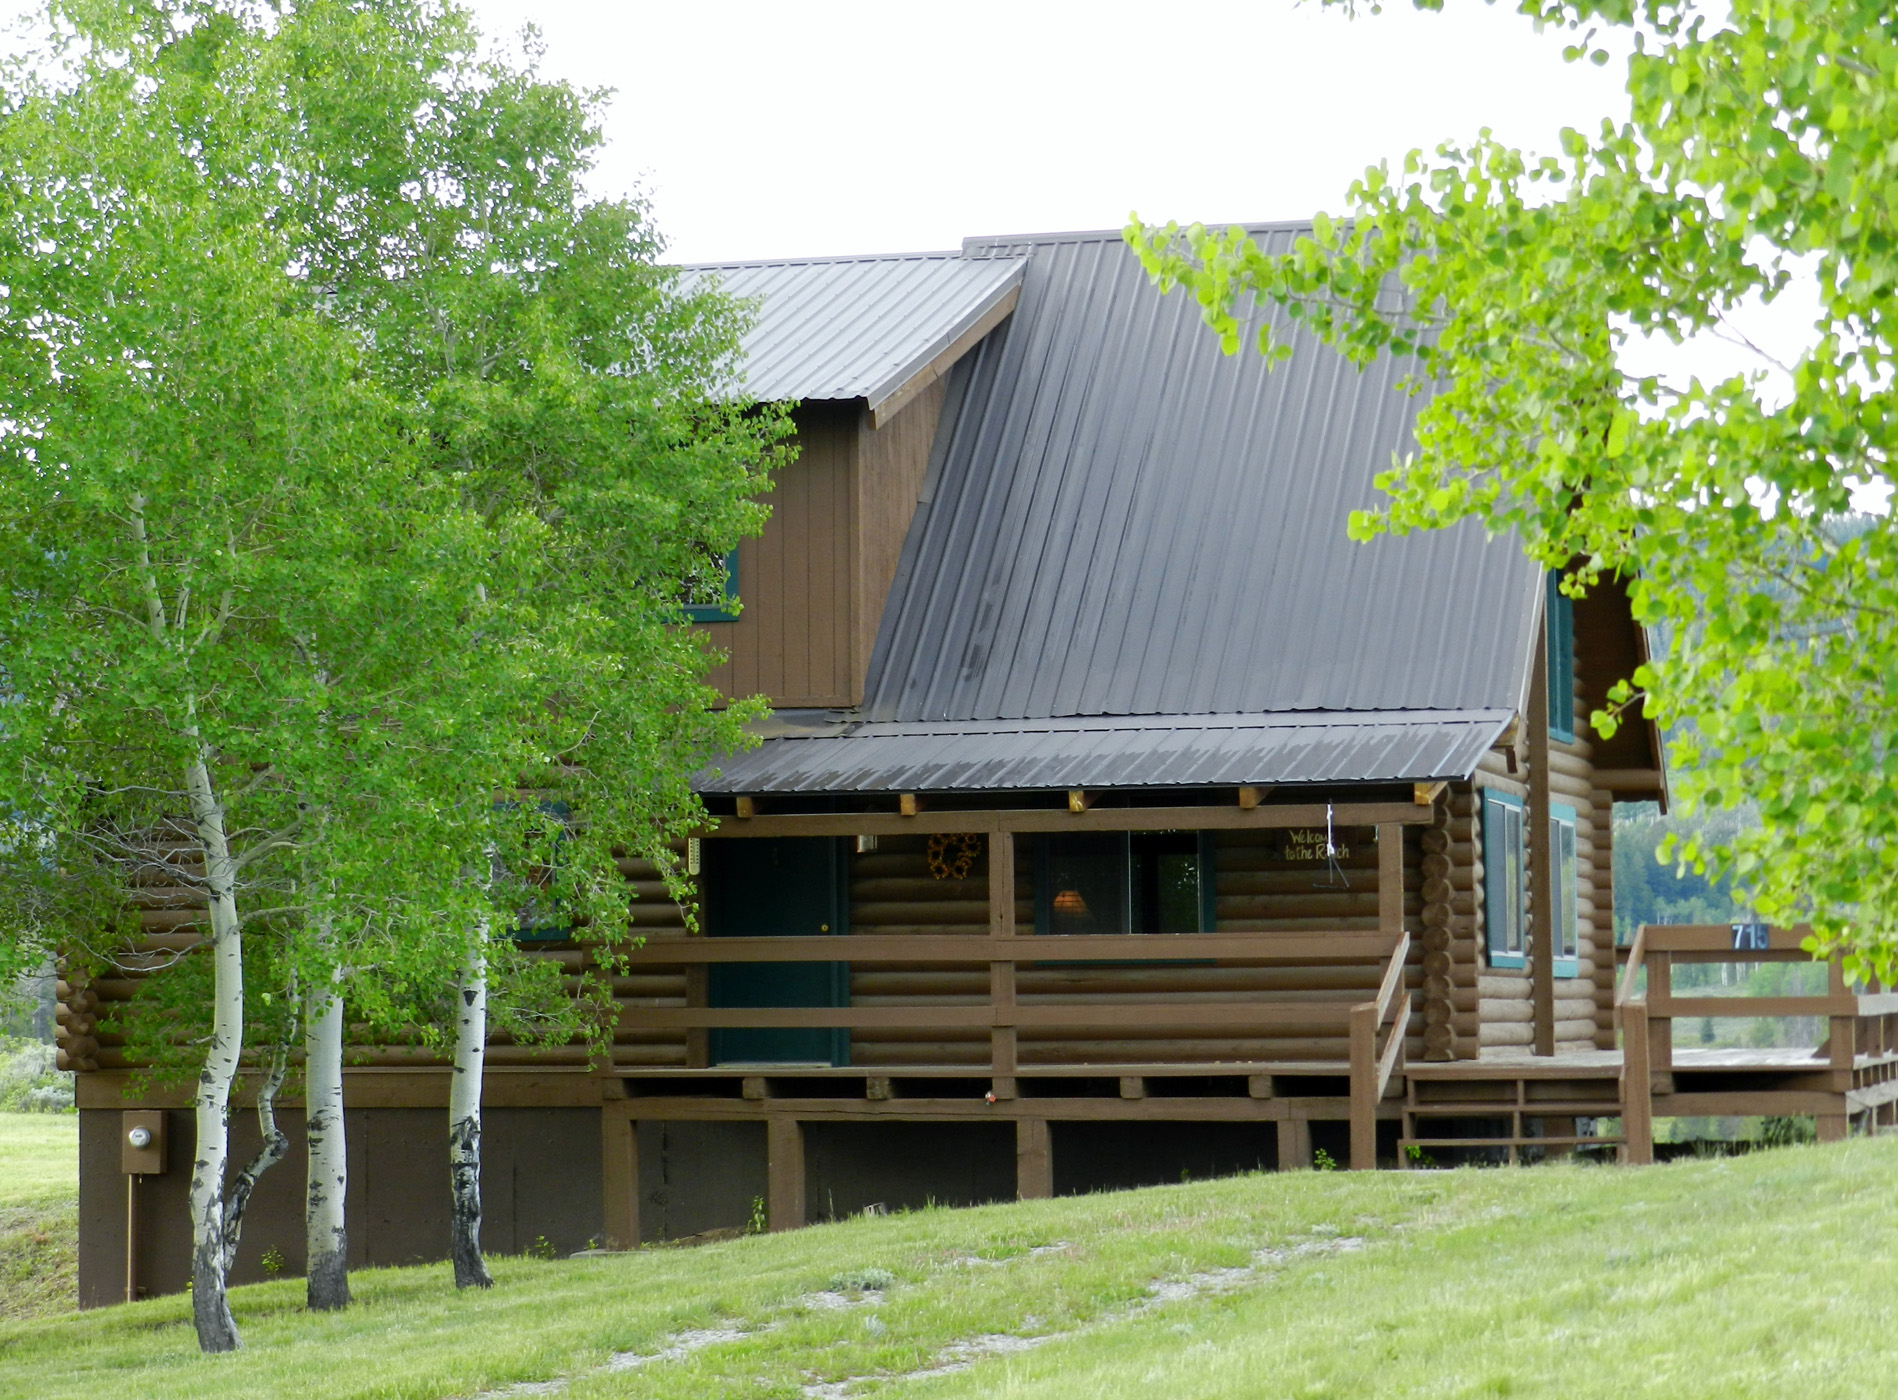 獨棟家庭住宅 為 出售 在 Charming Cabin in Hoback Ranches 715 Rim Road Bondurant, 懷俄明州, 82922 Jackson Hole, 美國